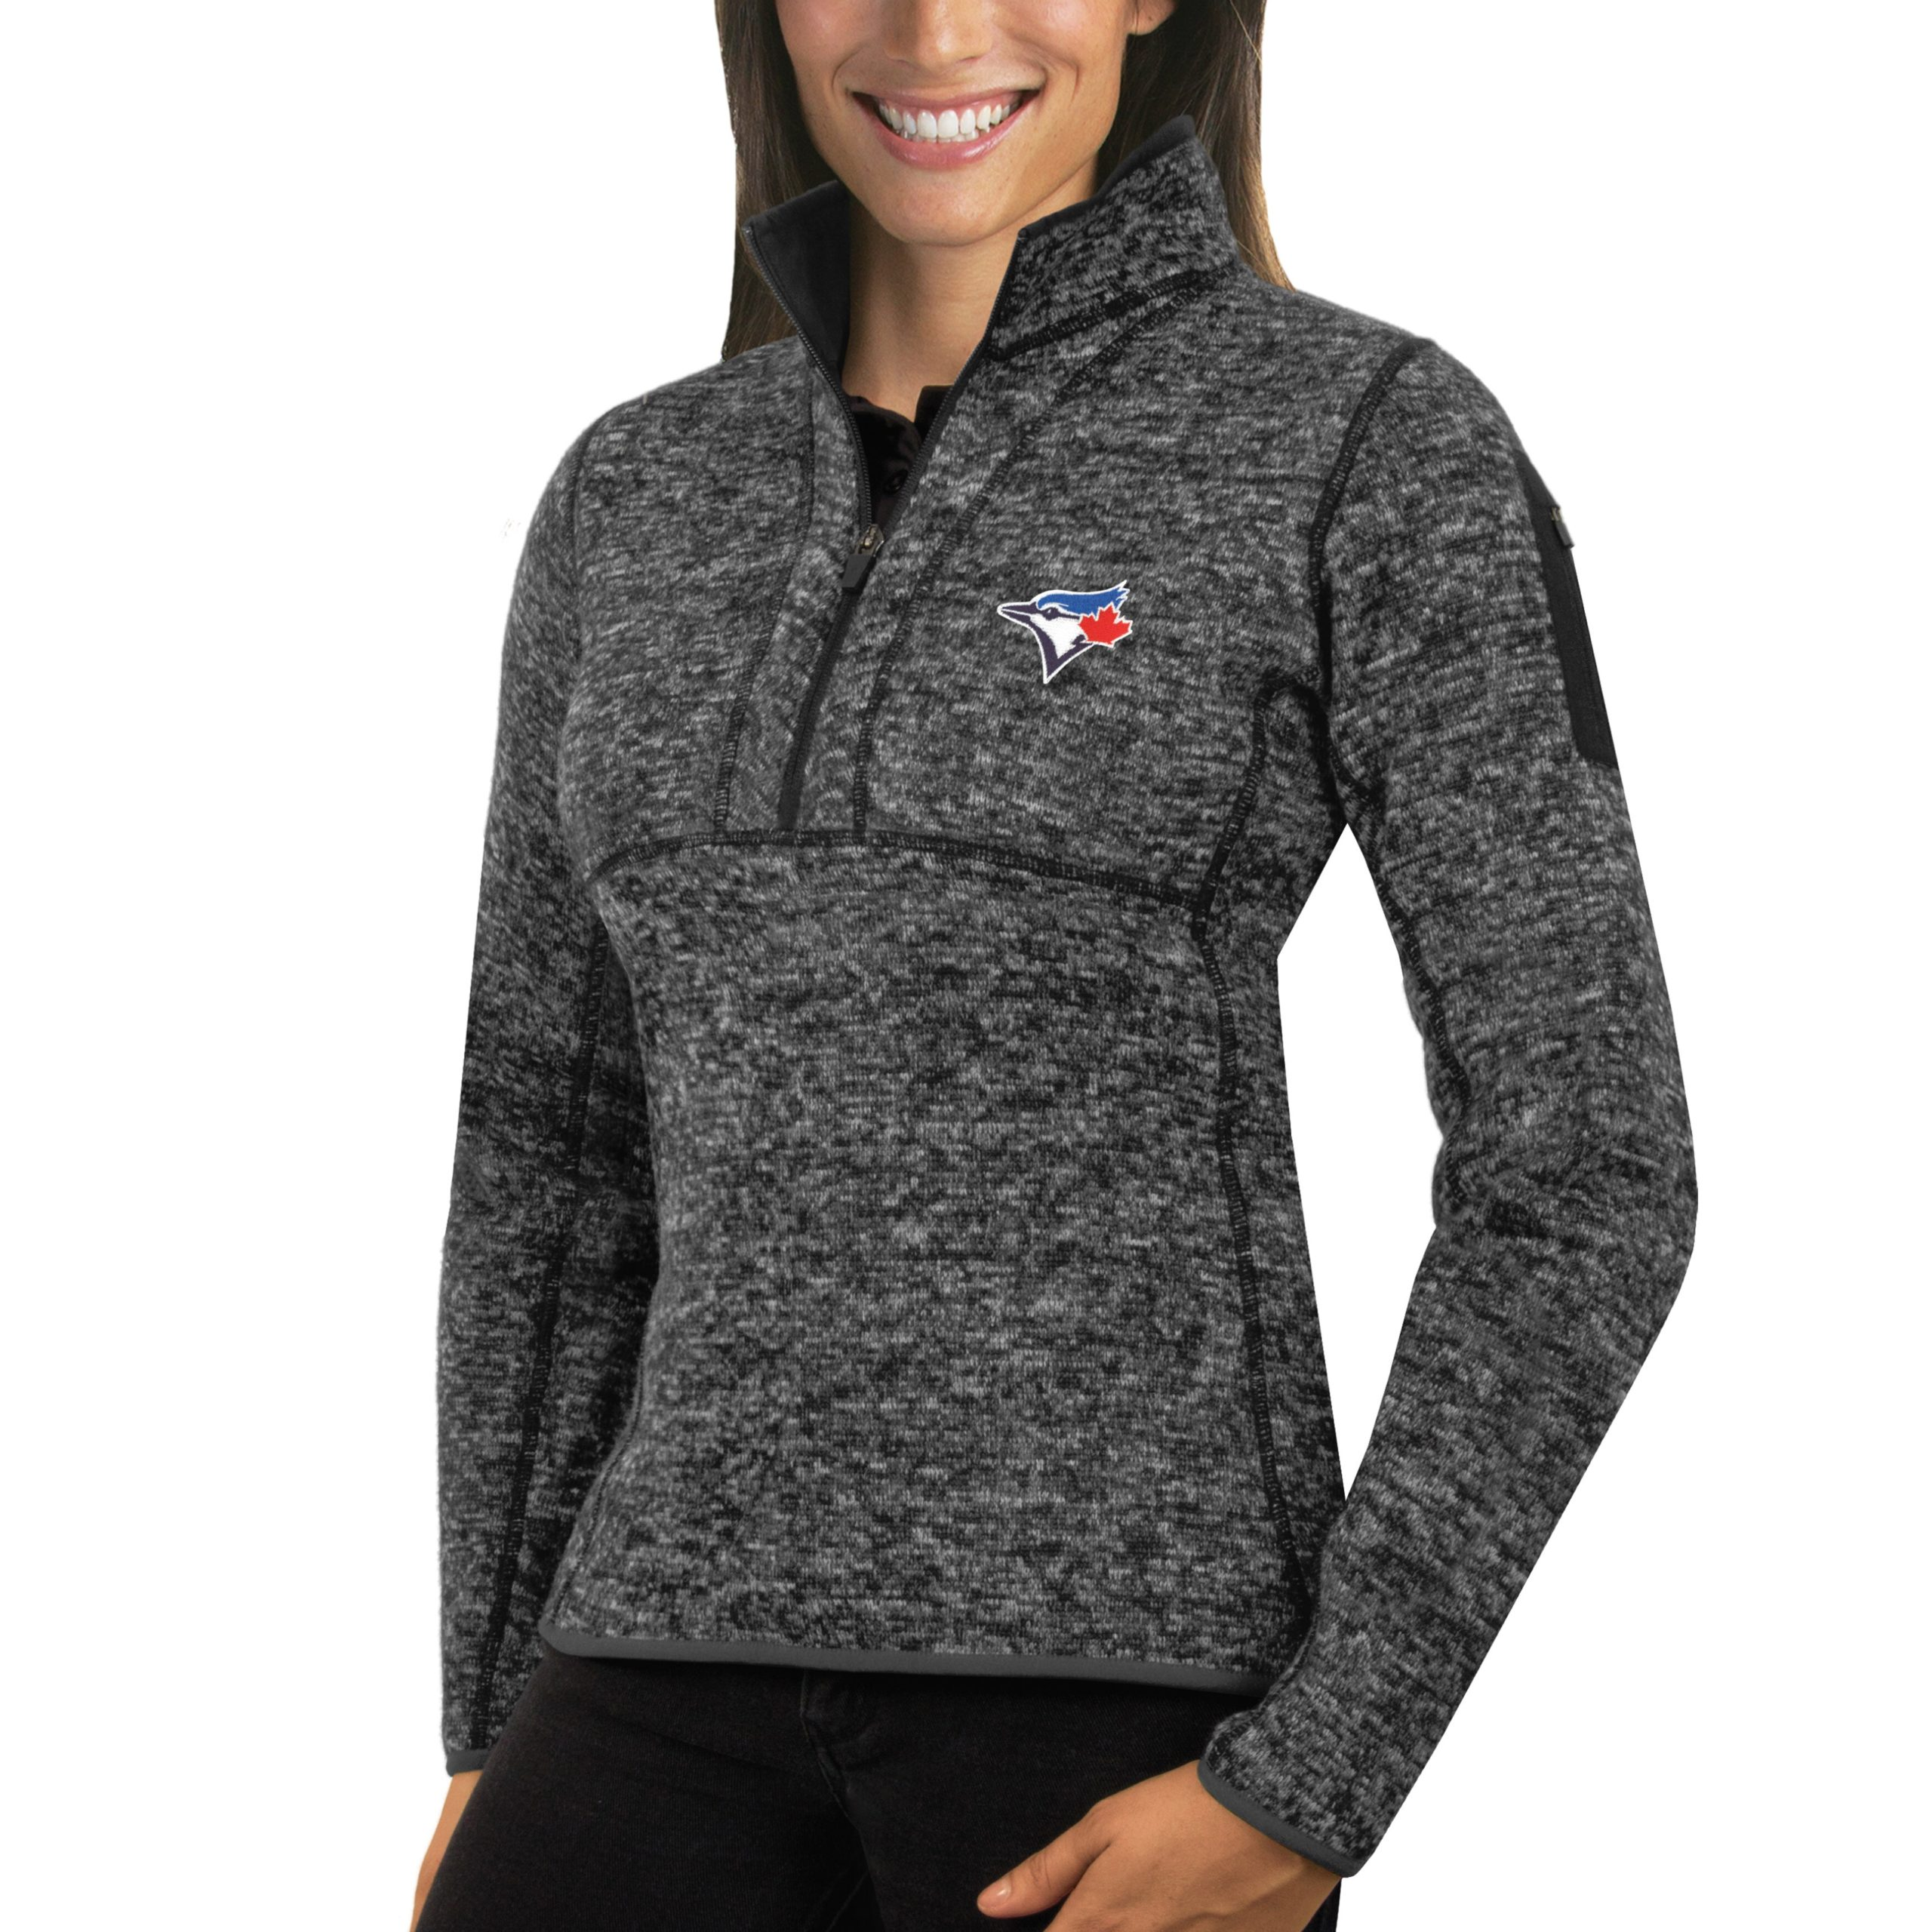 Toronto Blue Jays Antigua Women's Fortune Half-Zip Pullover Sweater - Heathered Charcoal